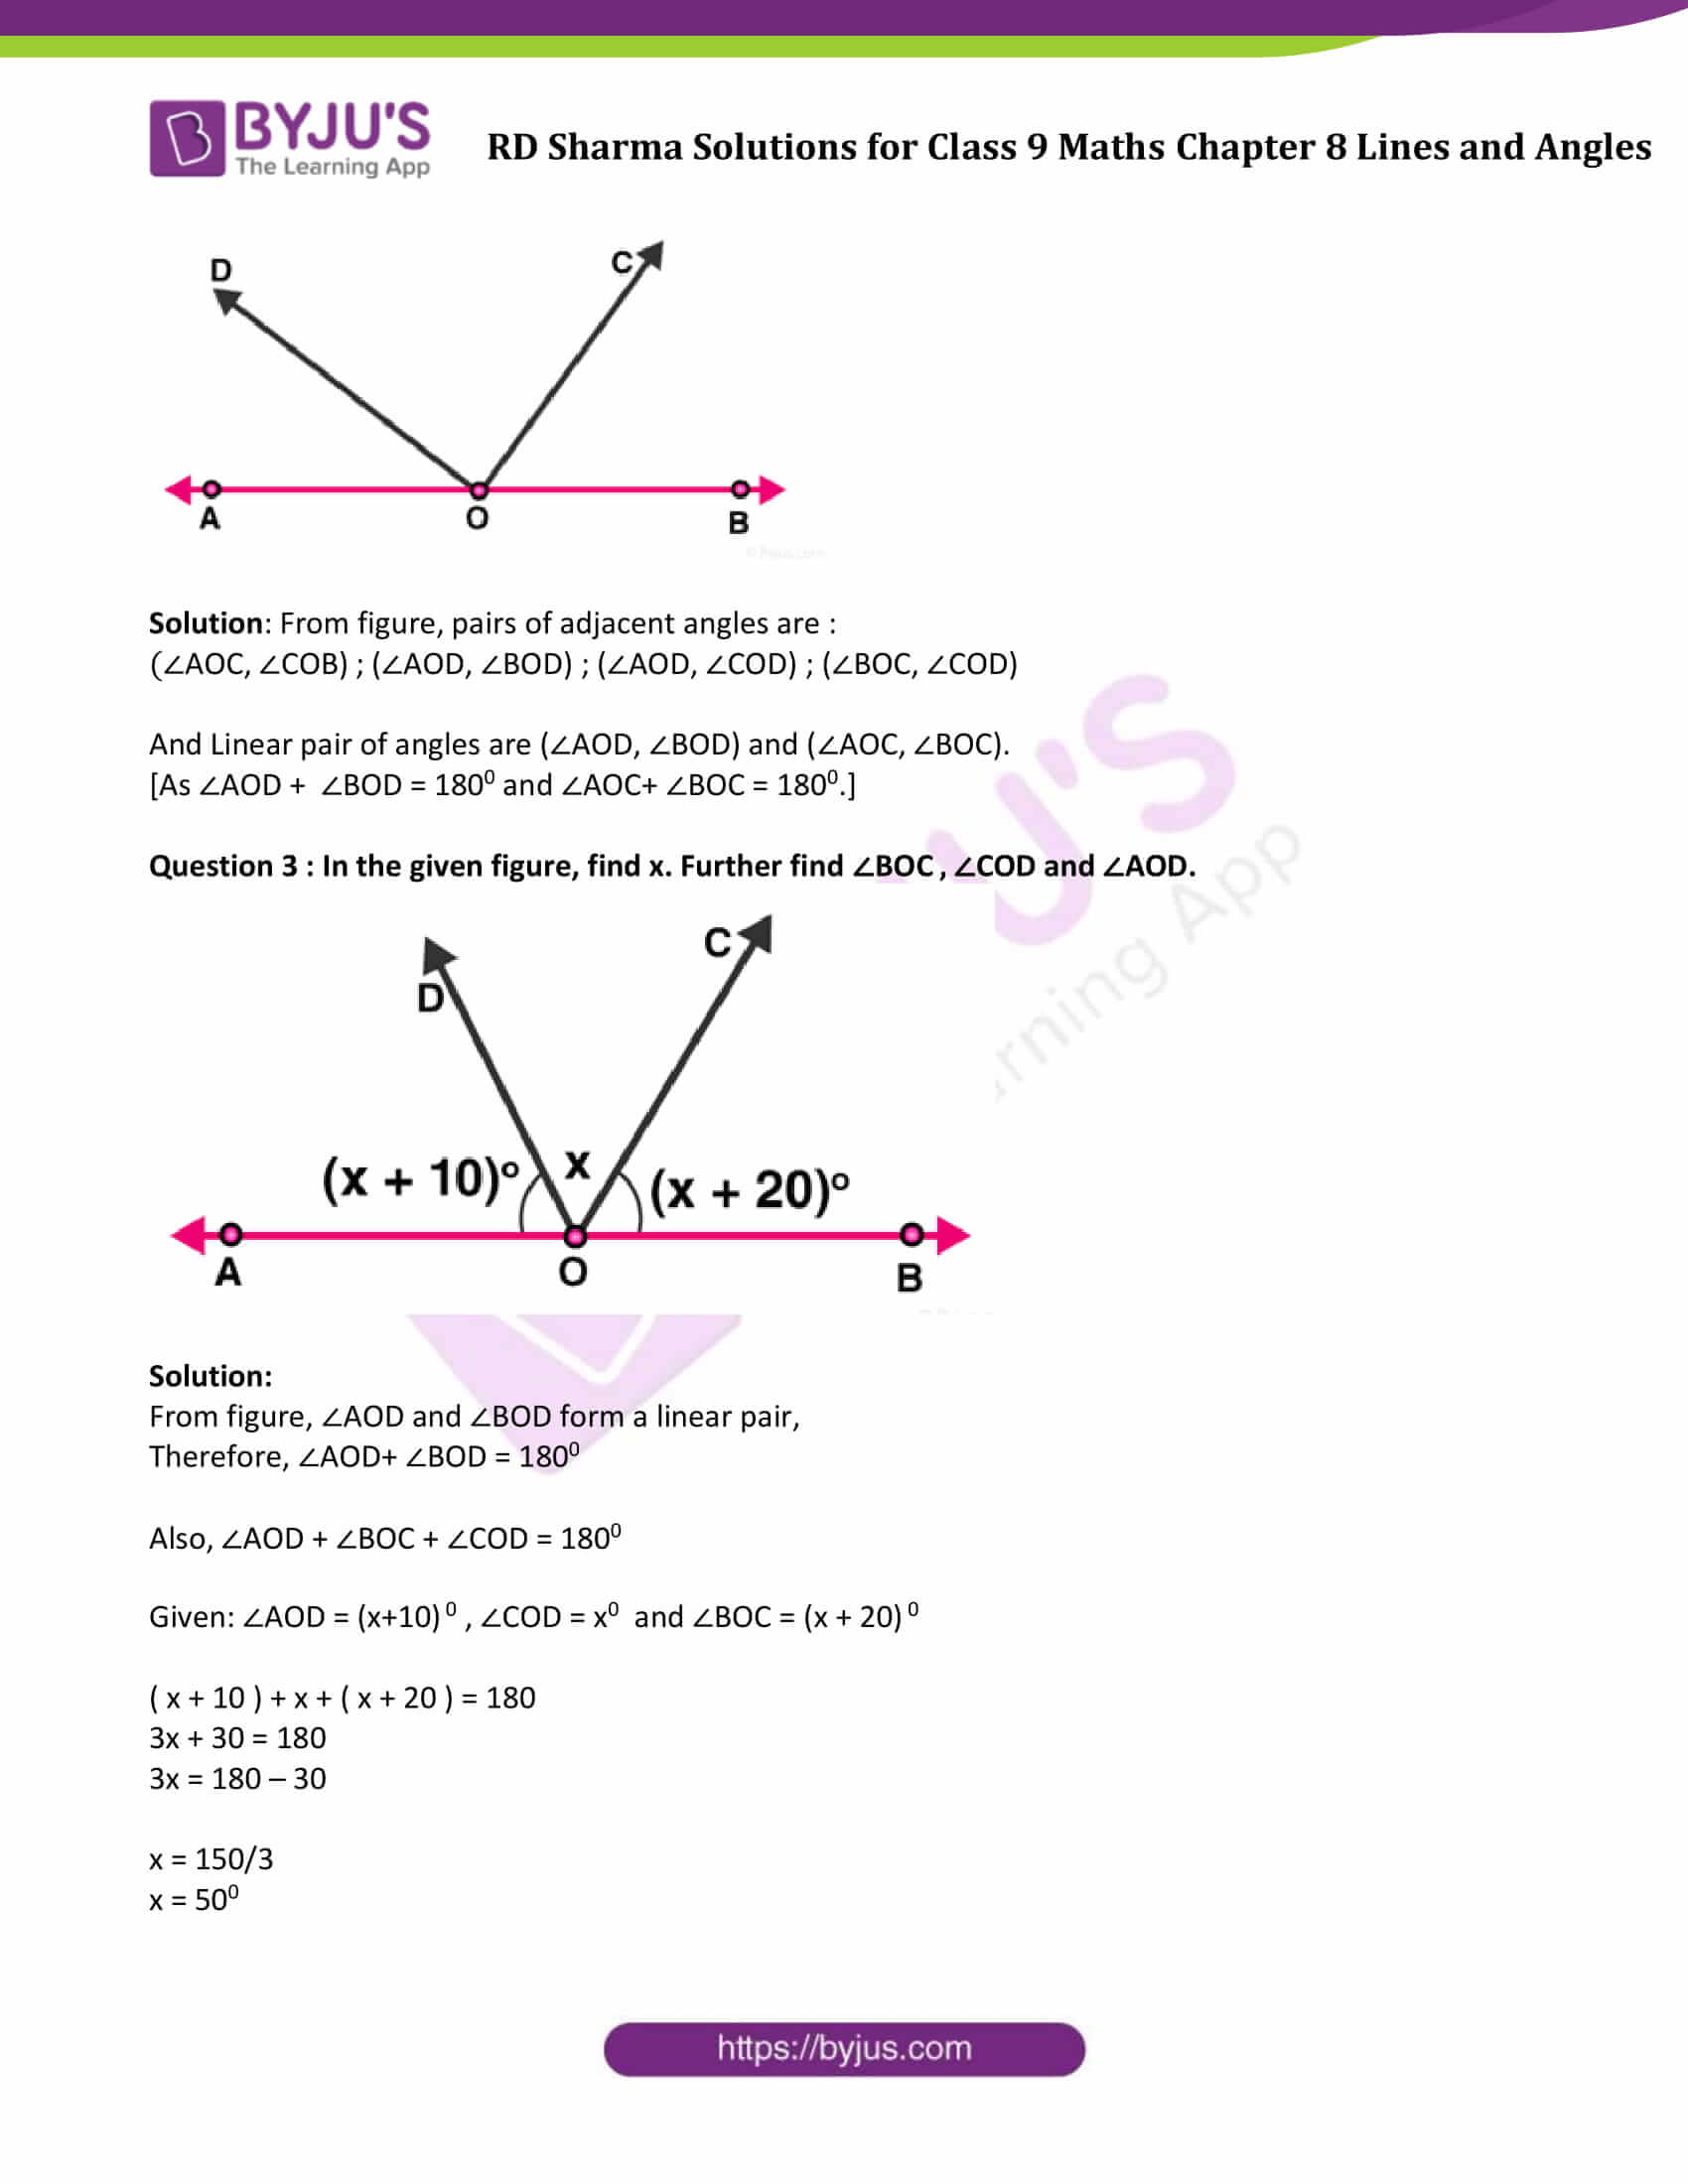 RD Sharma Solution class 9 Maths Chapter 8 Lines and Angles 05